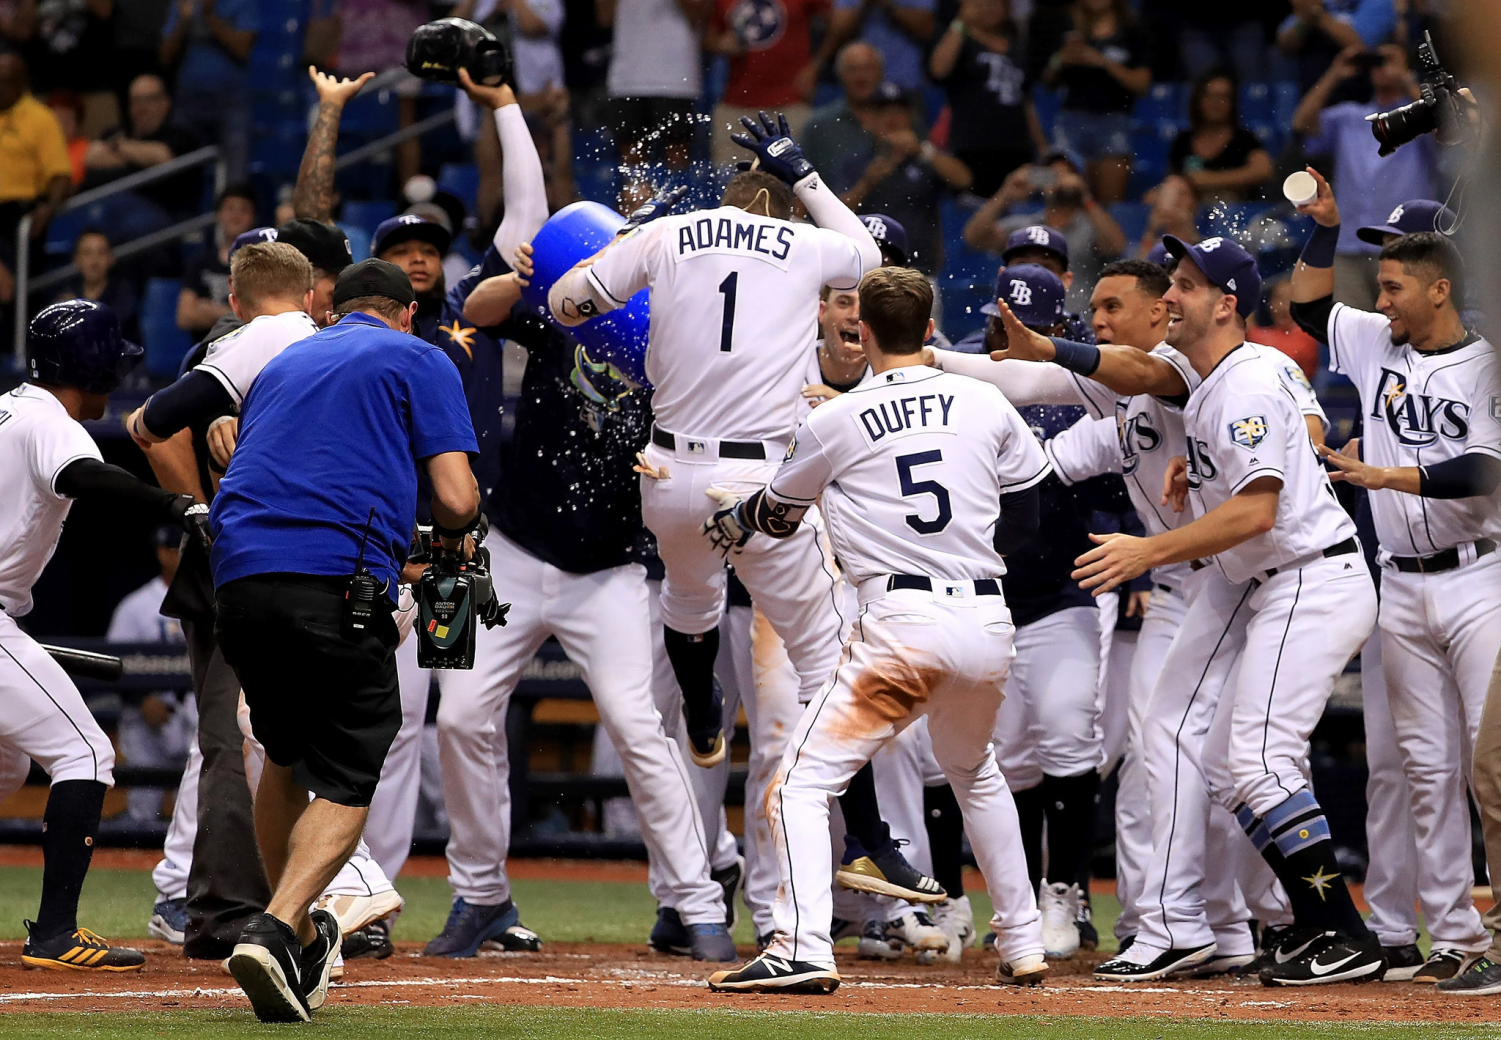 The Rays hope to see many more exciting moments, like this Willy Adames walk-off homerun, in 2019.